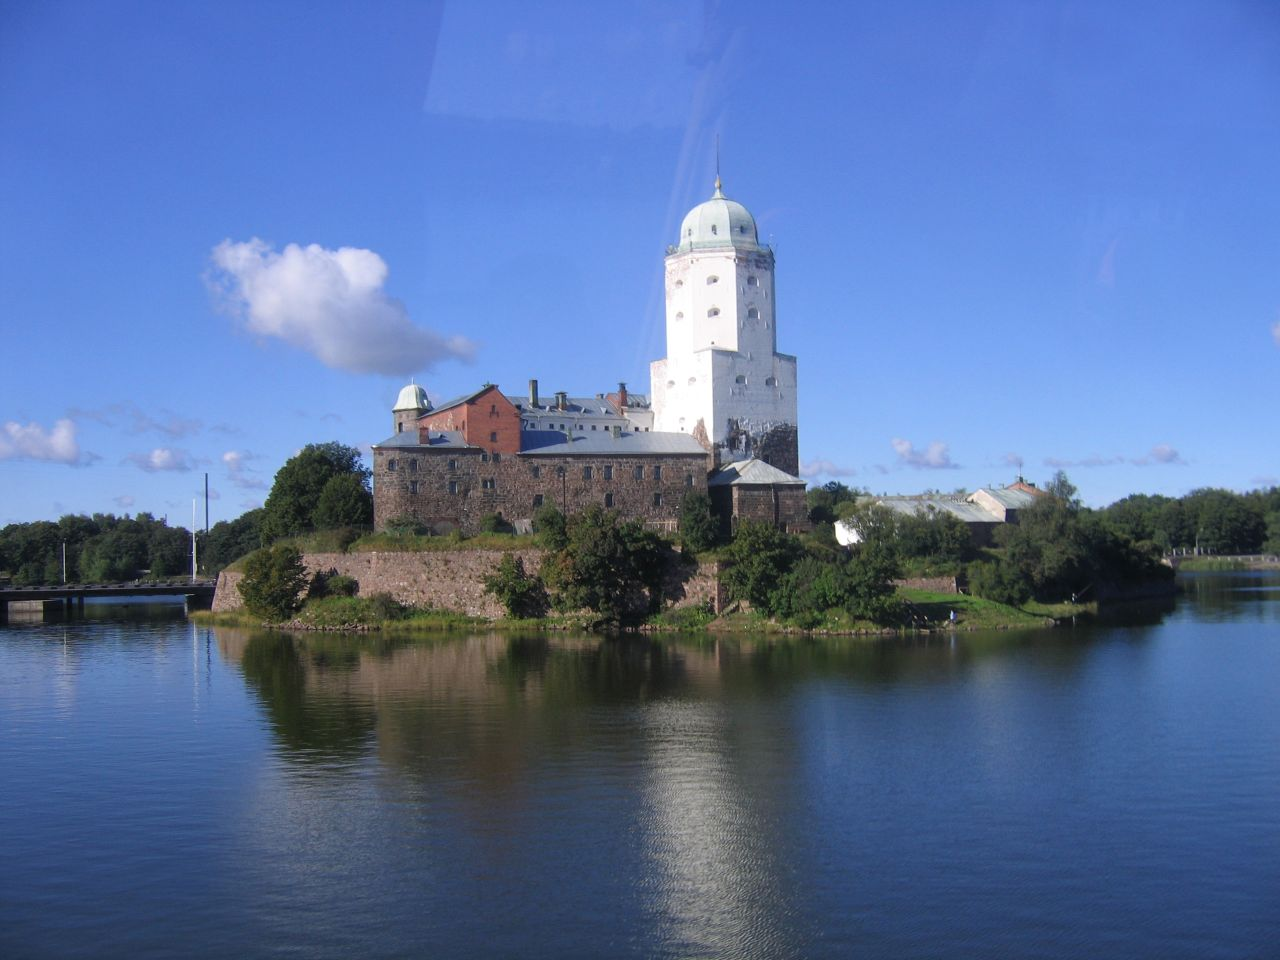 dating vyborg Danish days in viborg has a long and rich history dating back to viborg's earliest days danish days was originally celebrated on june 5th to coincide with denmark.